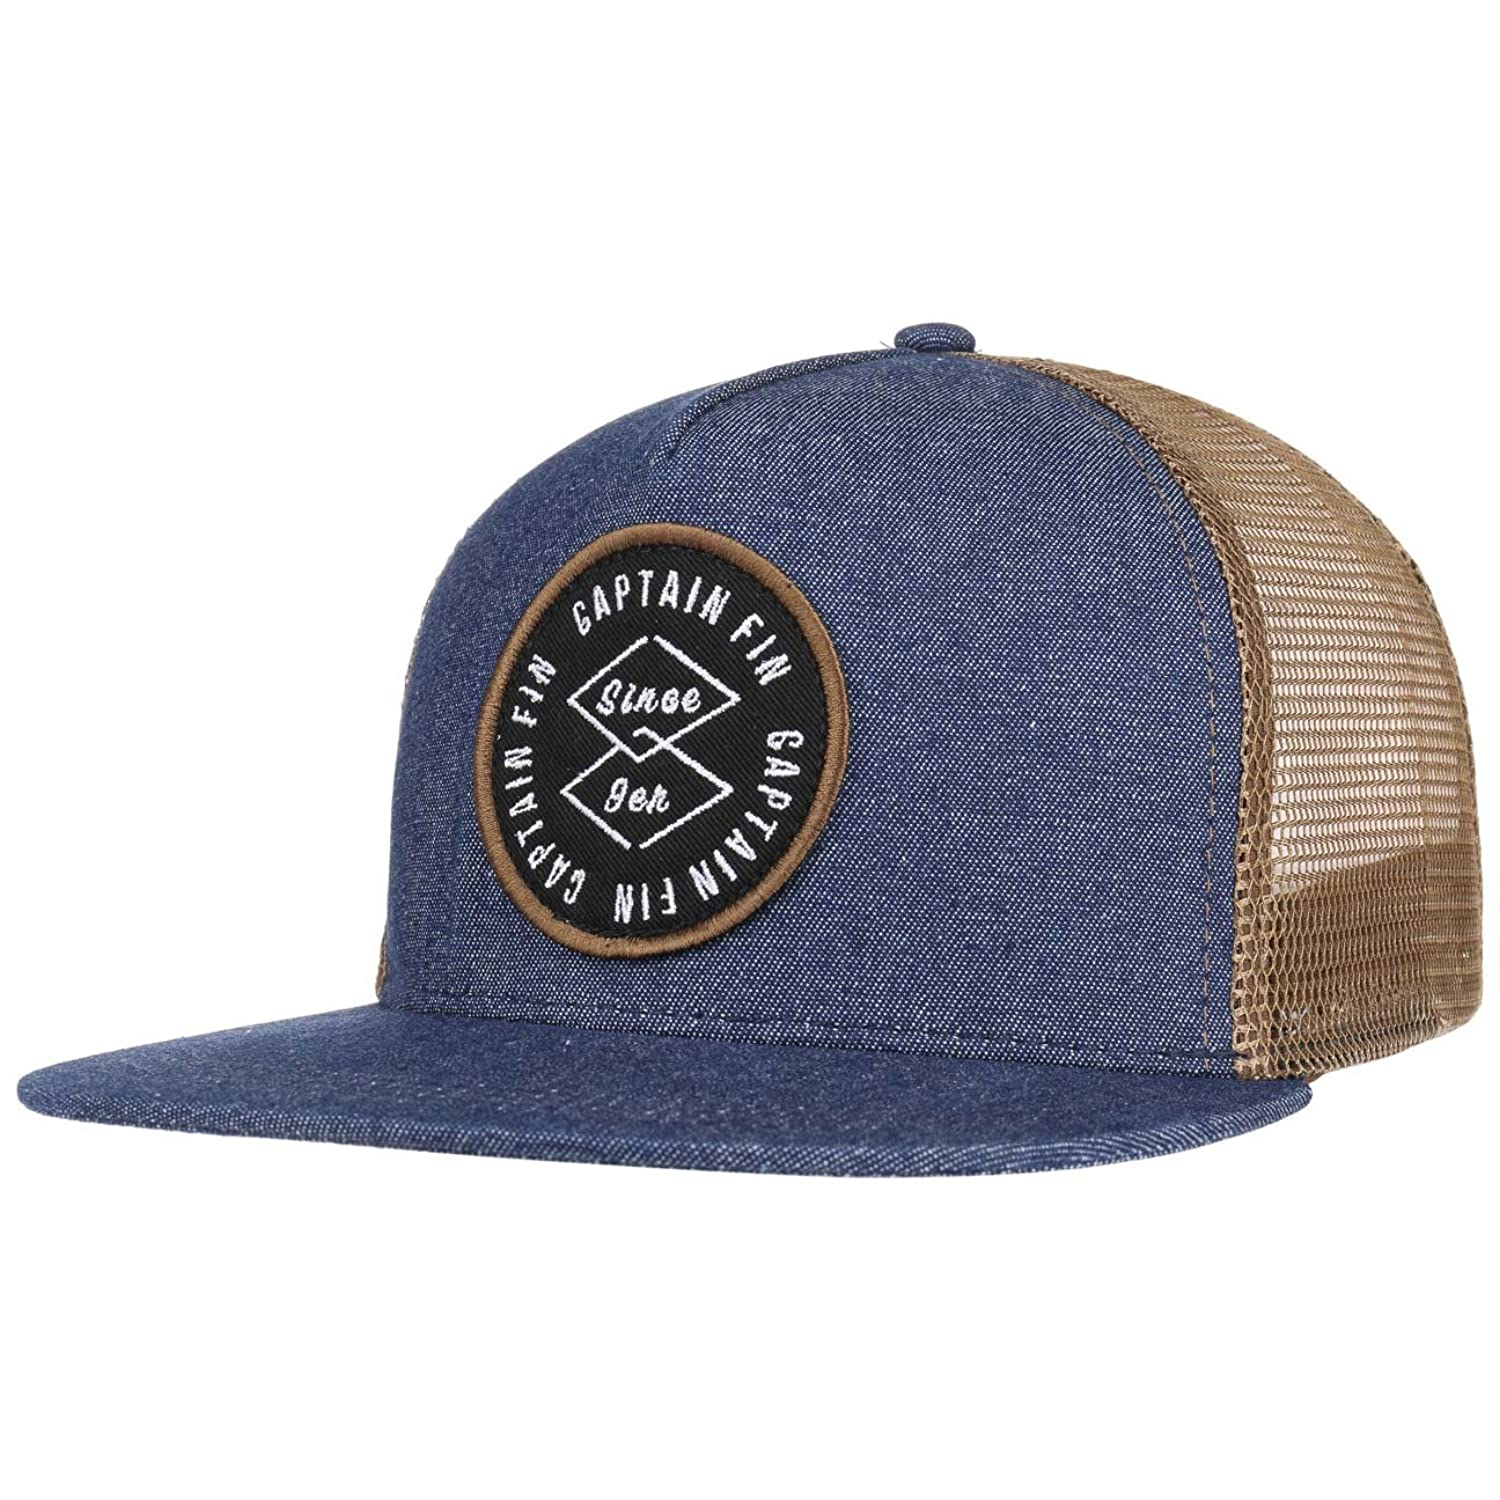 Gorra Diamonds Forever Trucker by Captain Fin gorragorra de baseball 70% OFF d8e6b64b8d0